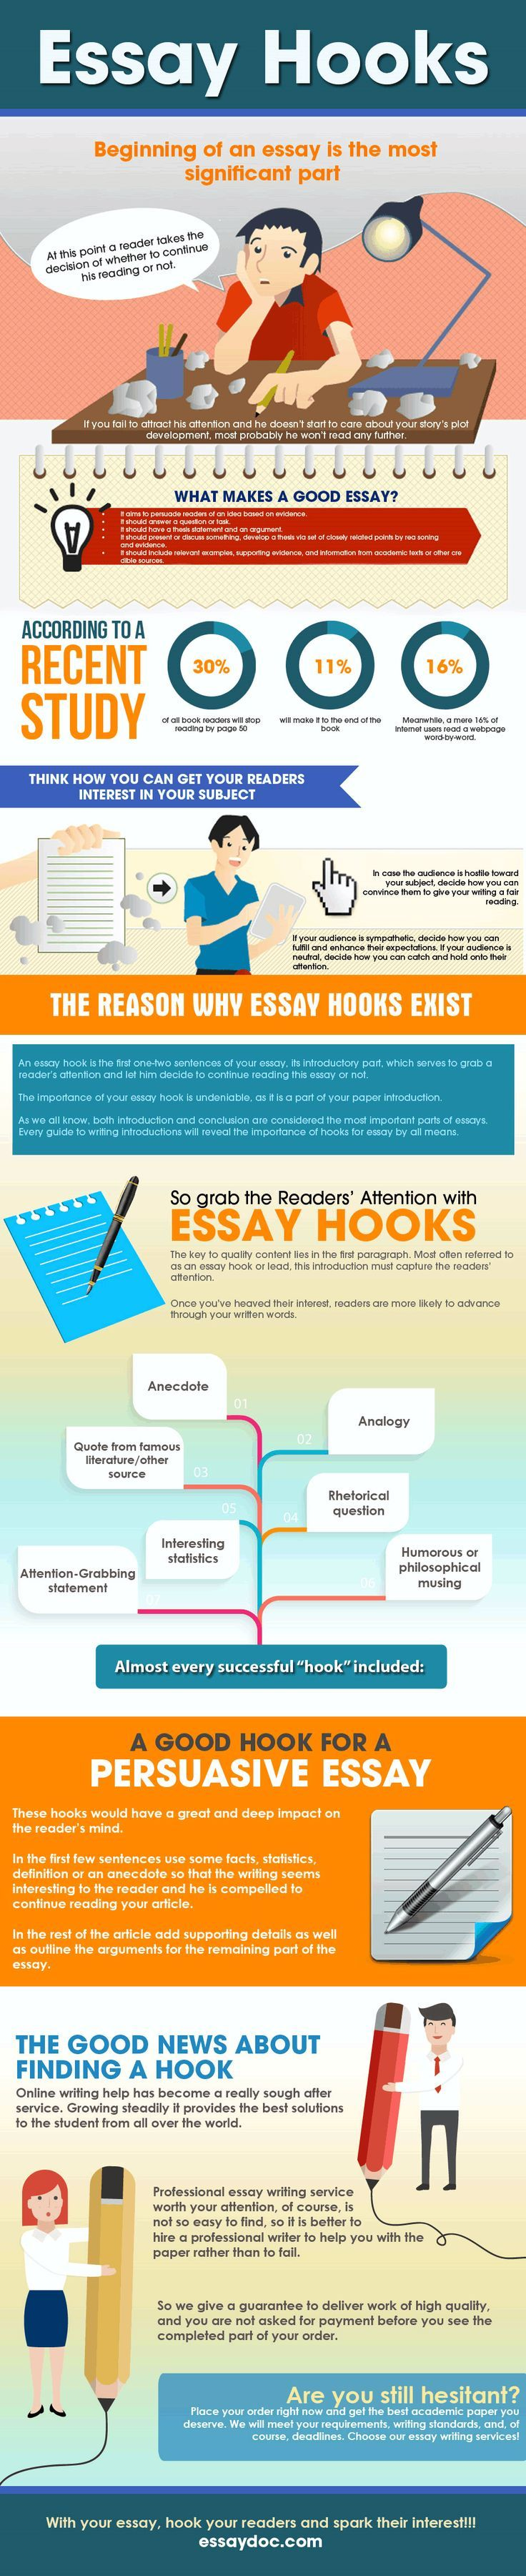 hooks essay why i want to be a police officer essay why i want to  essay hooks infographic hooks infographic and infographic essay hooks infographic education